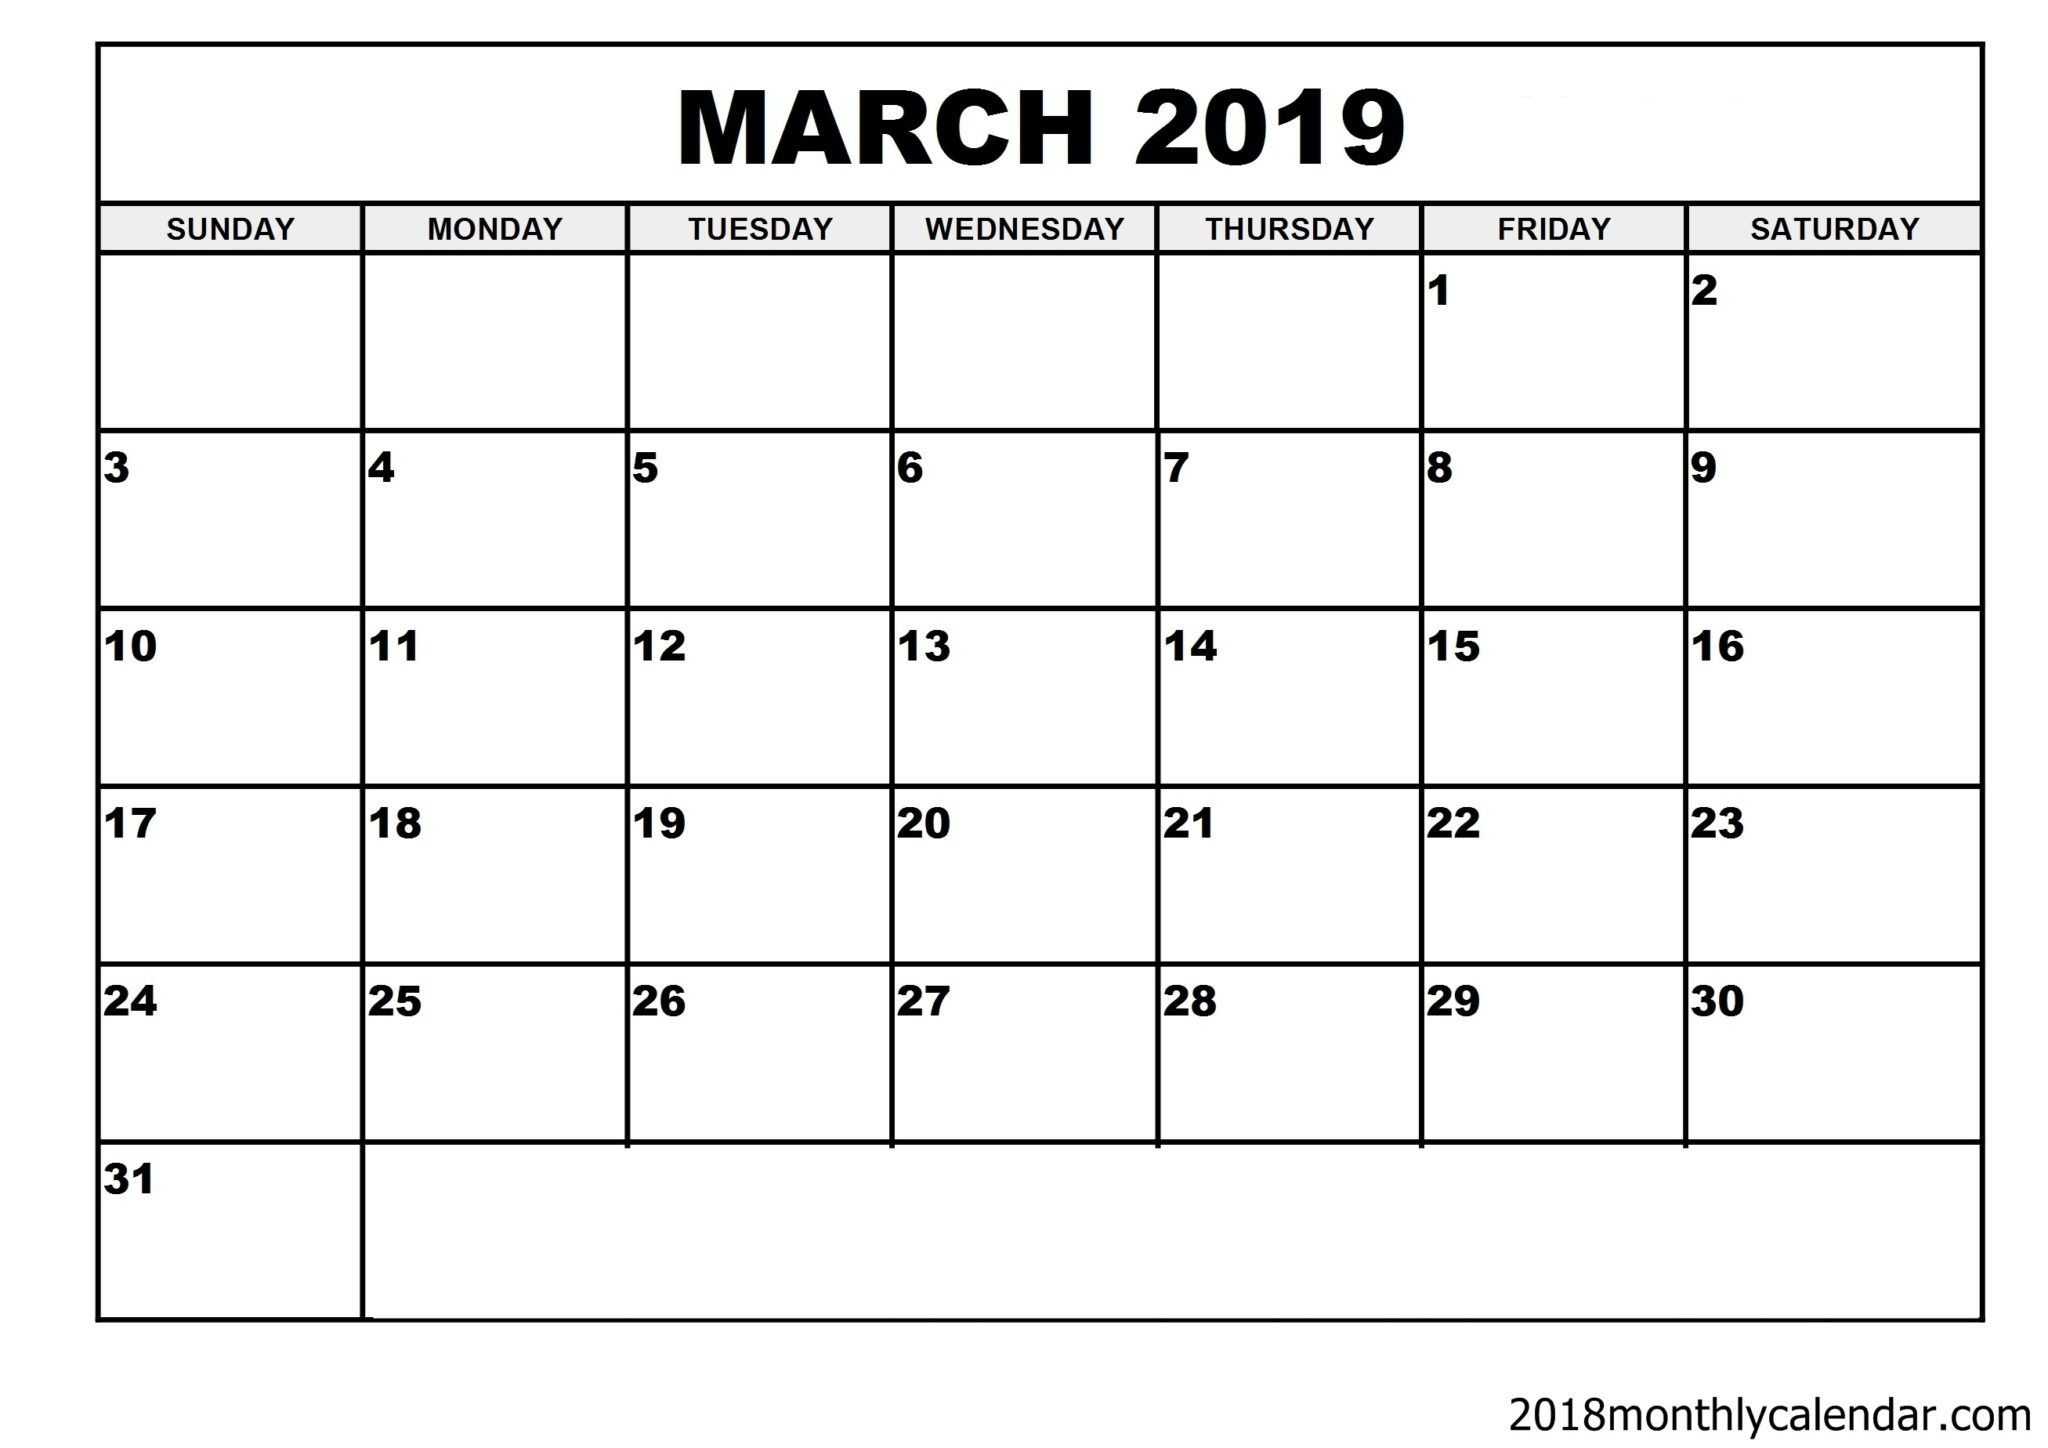 Download March 2019 Calendar – Blank Template  Editable intended for Fillable Printable Calendar